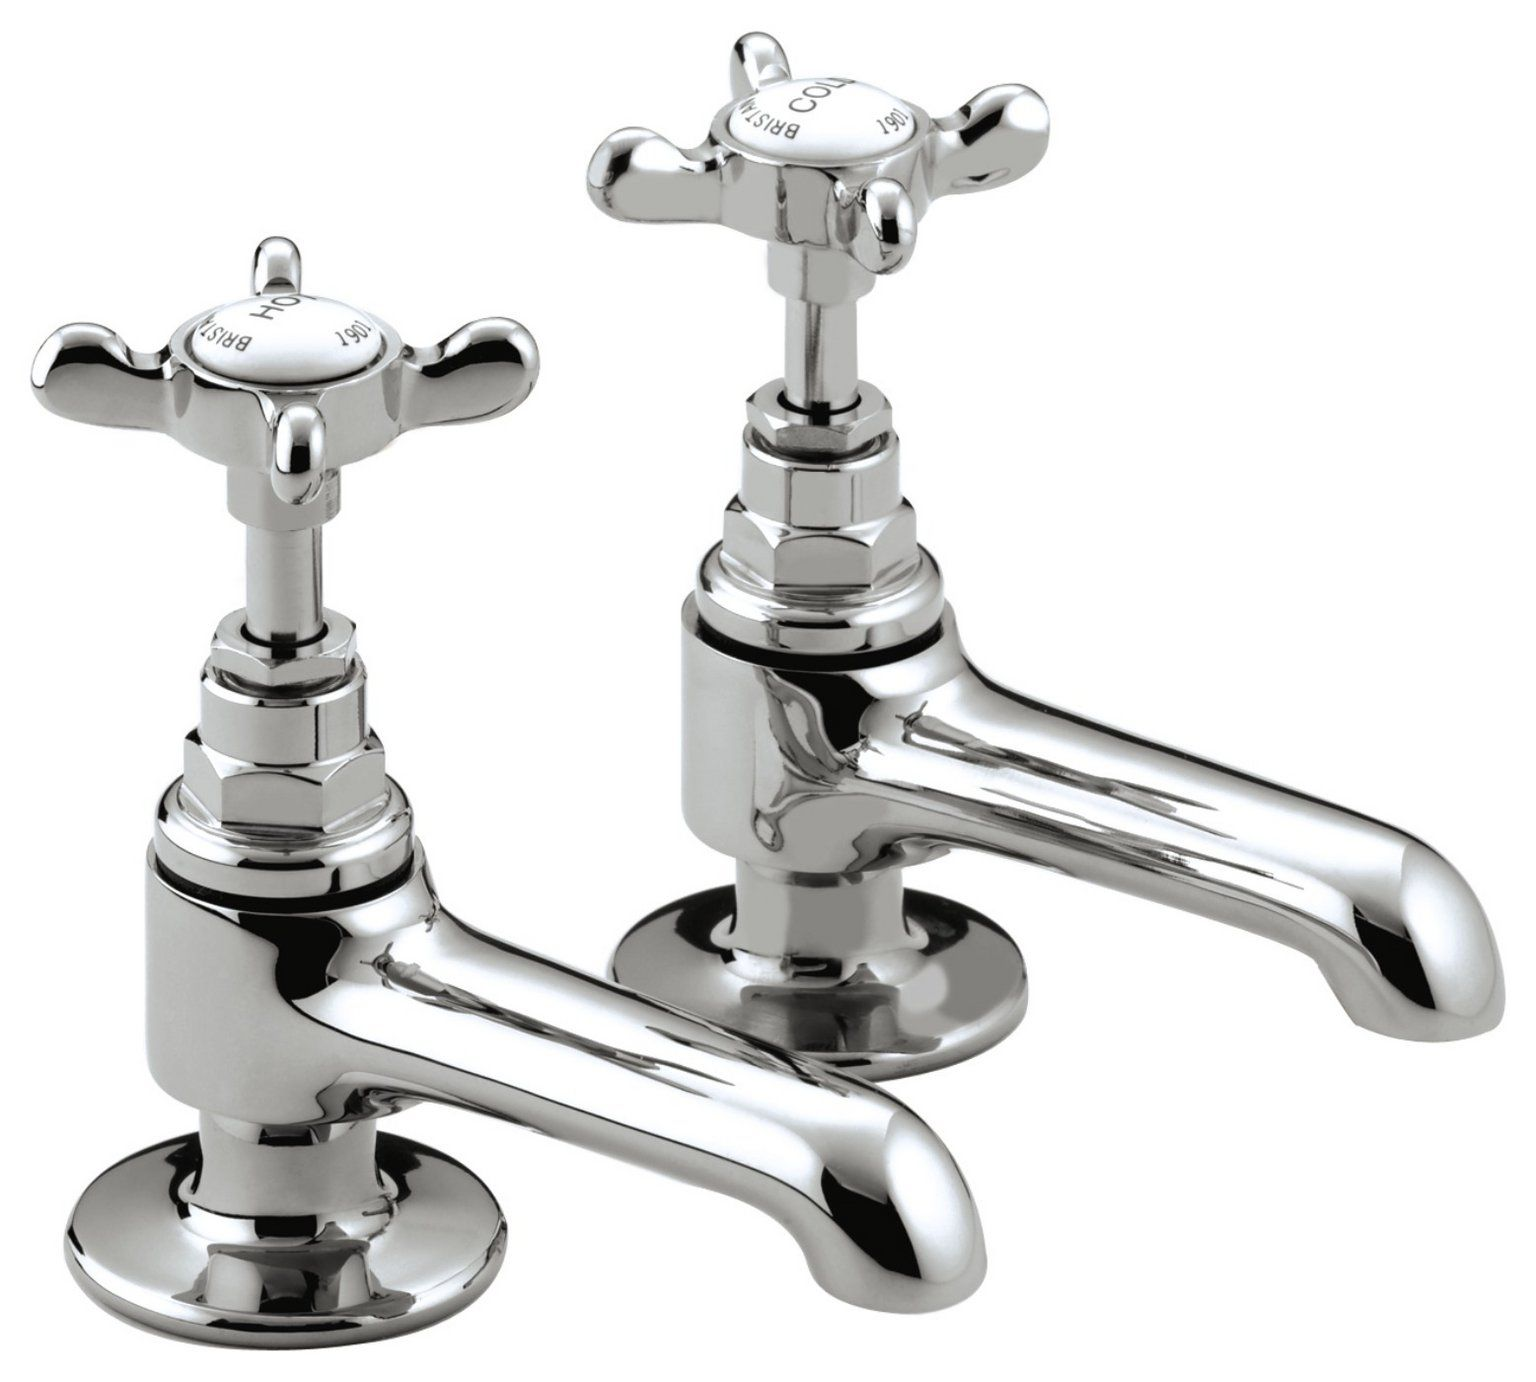 Buy Bristan 1901 Basin Taps - Chrome at Argos.co.uk - Your Online ...